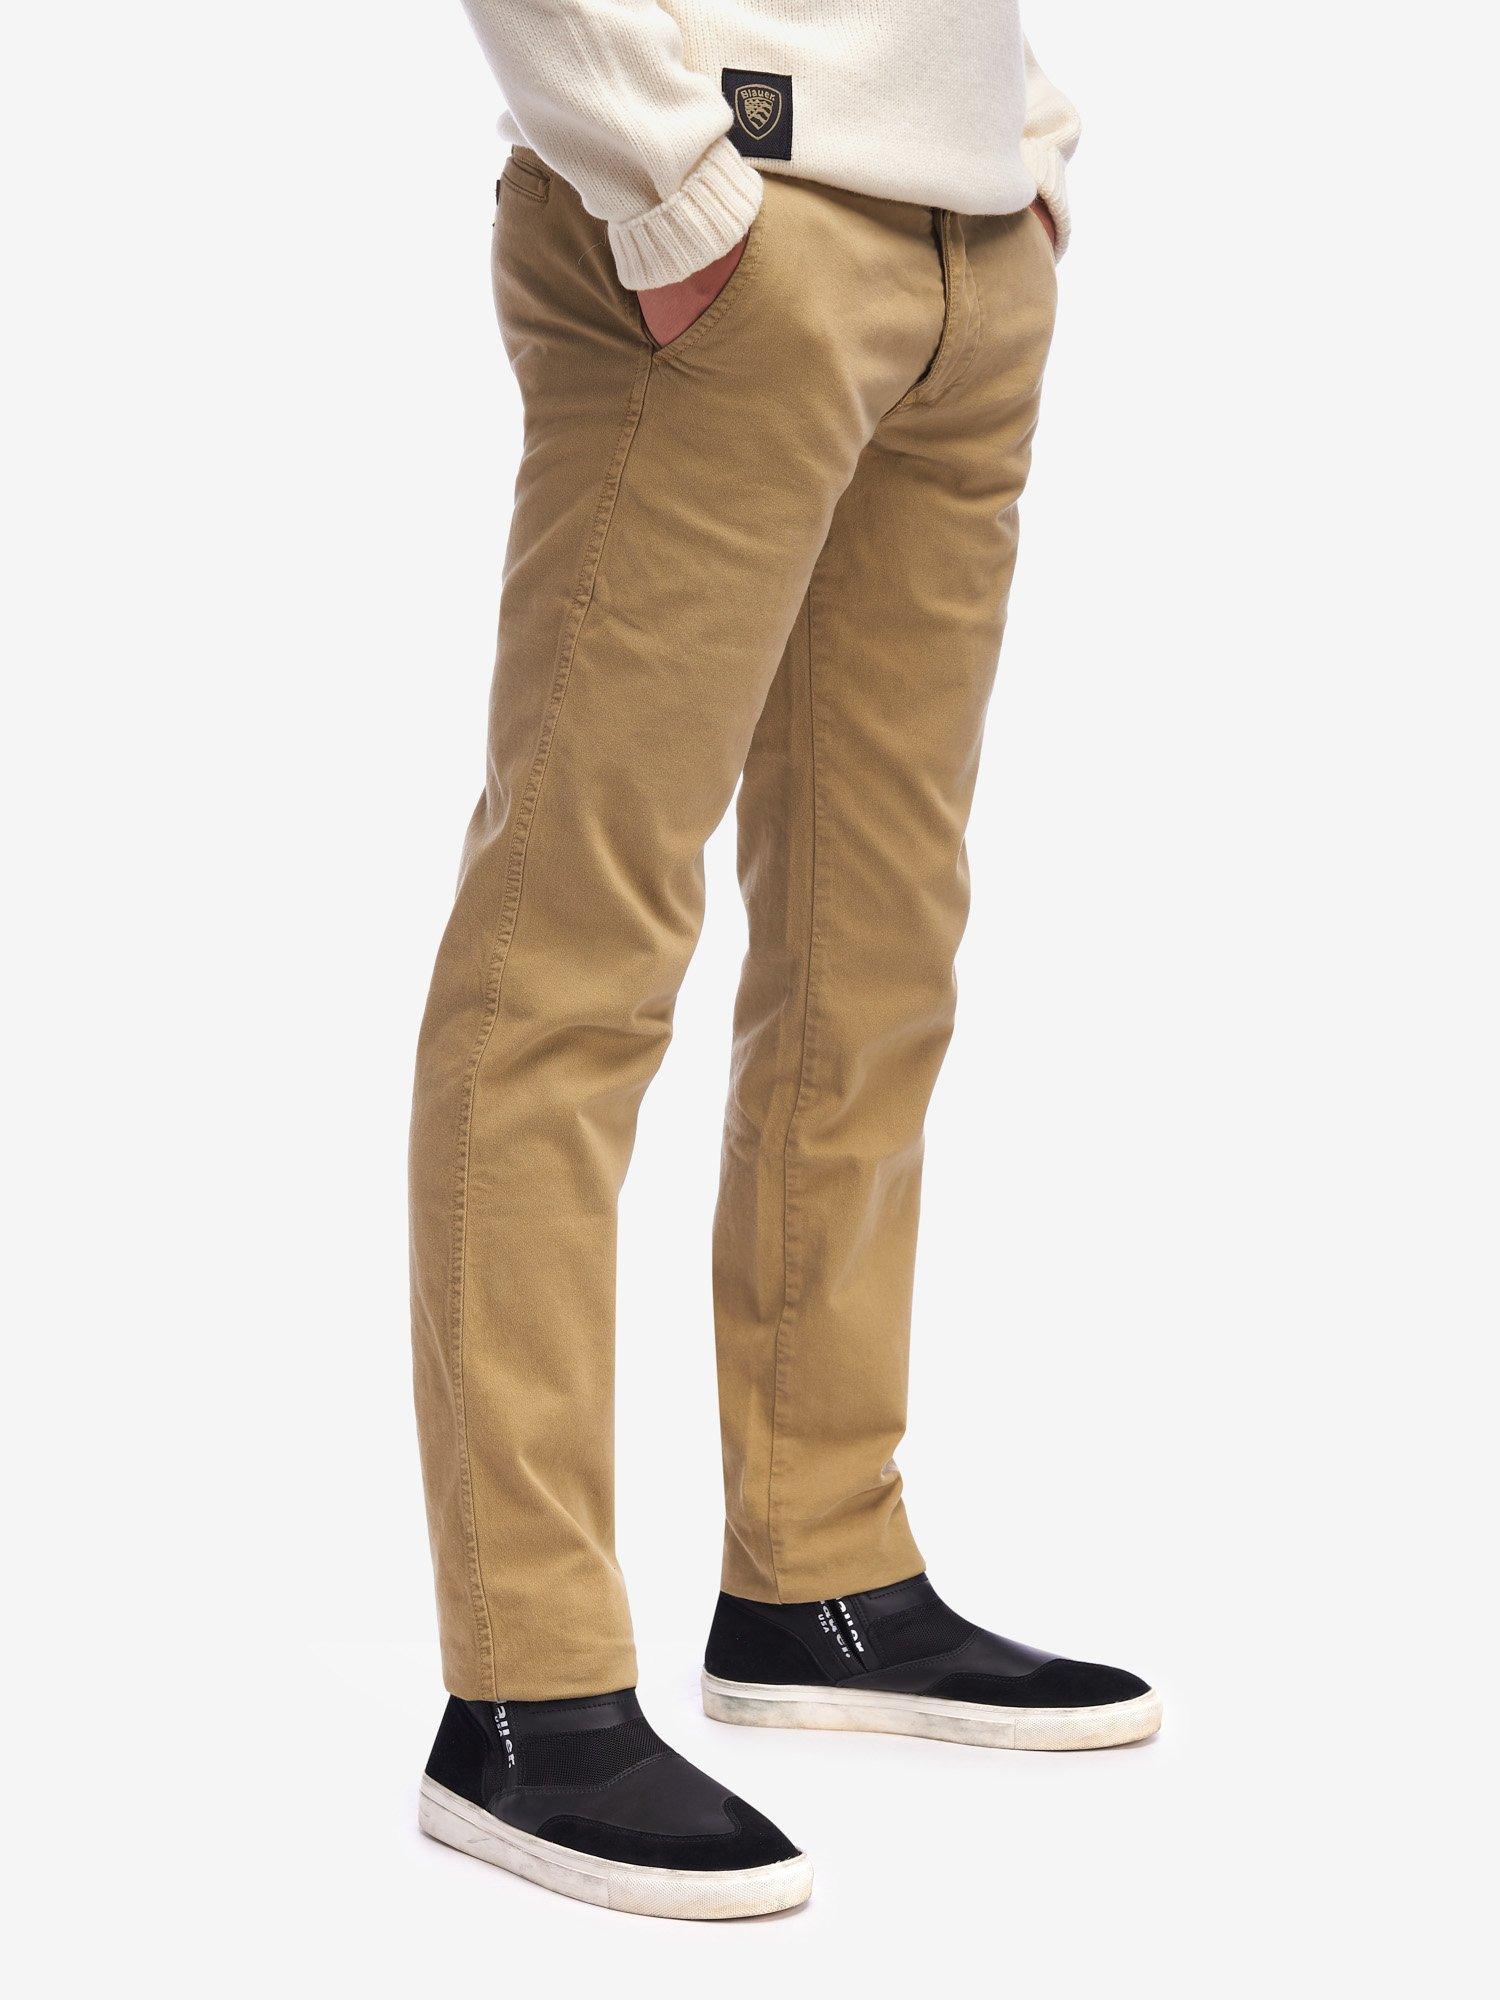 PANTALONE CHINO STRETCH IN GABARDINA - Blauer